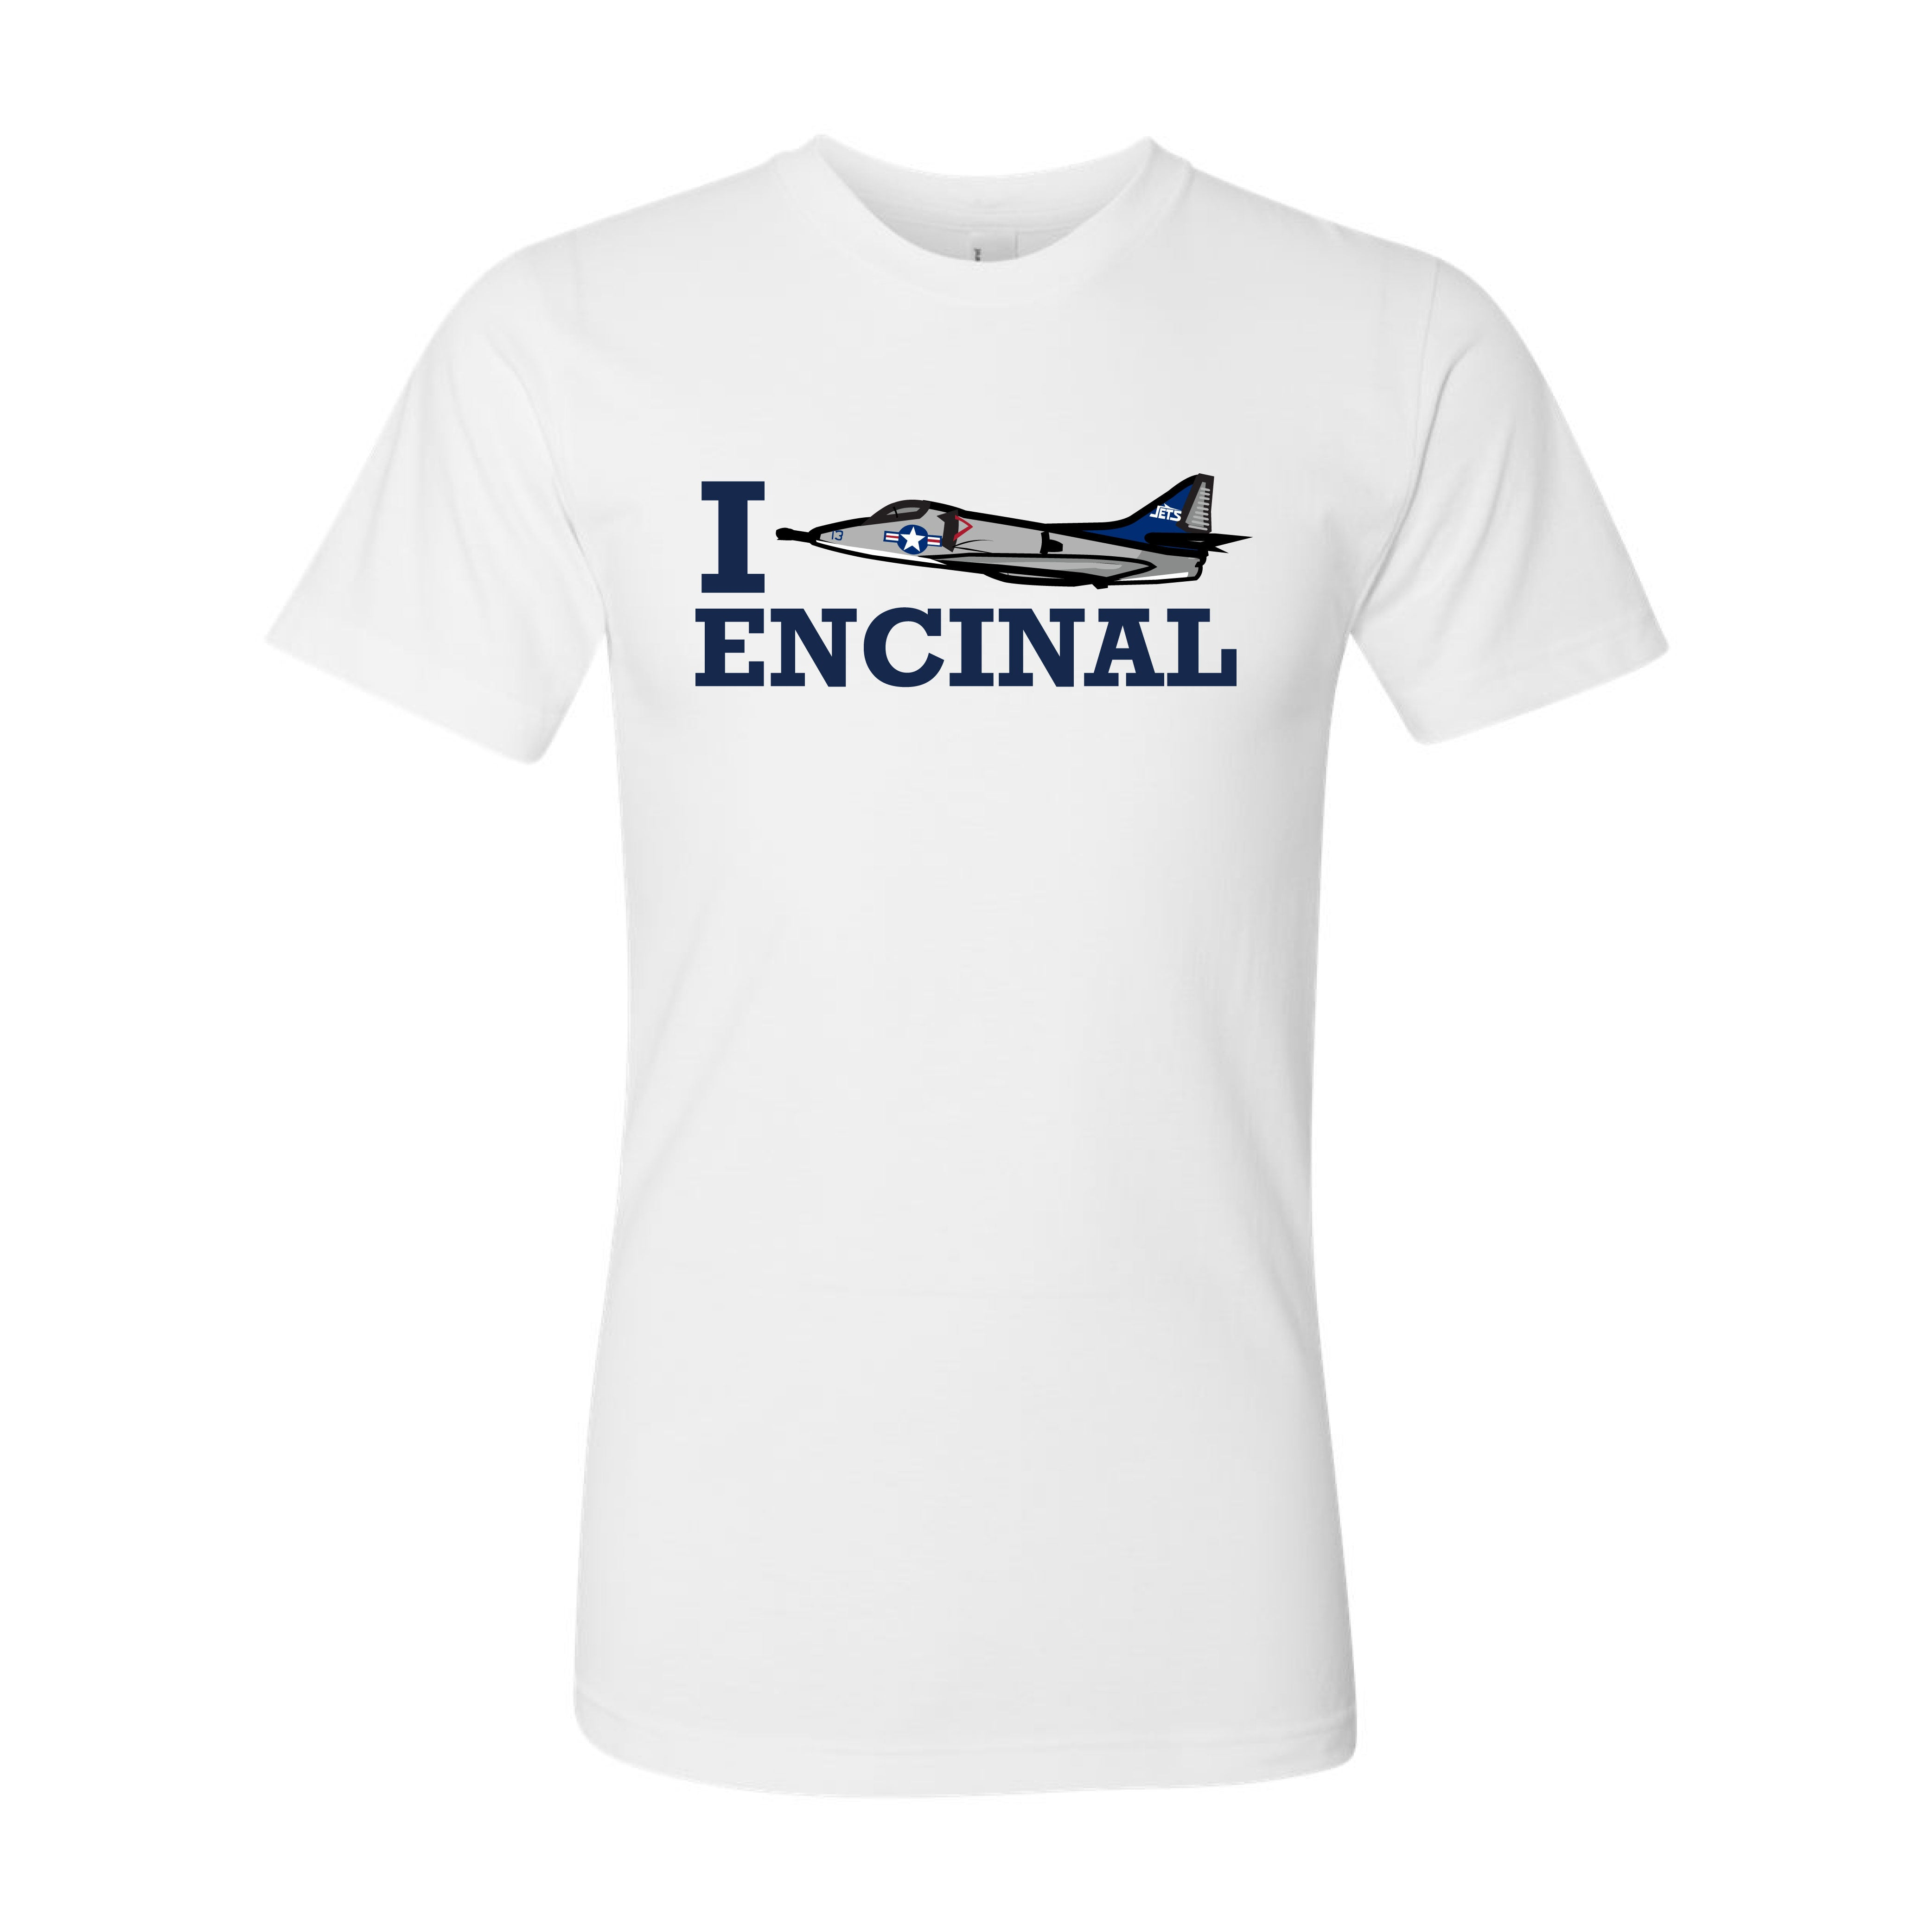 ENCINAL HIGH SCHOOL I JET ENCINAL ADULT T-SHIRTS